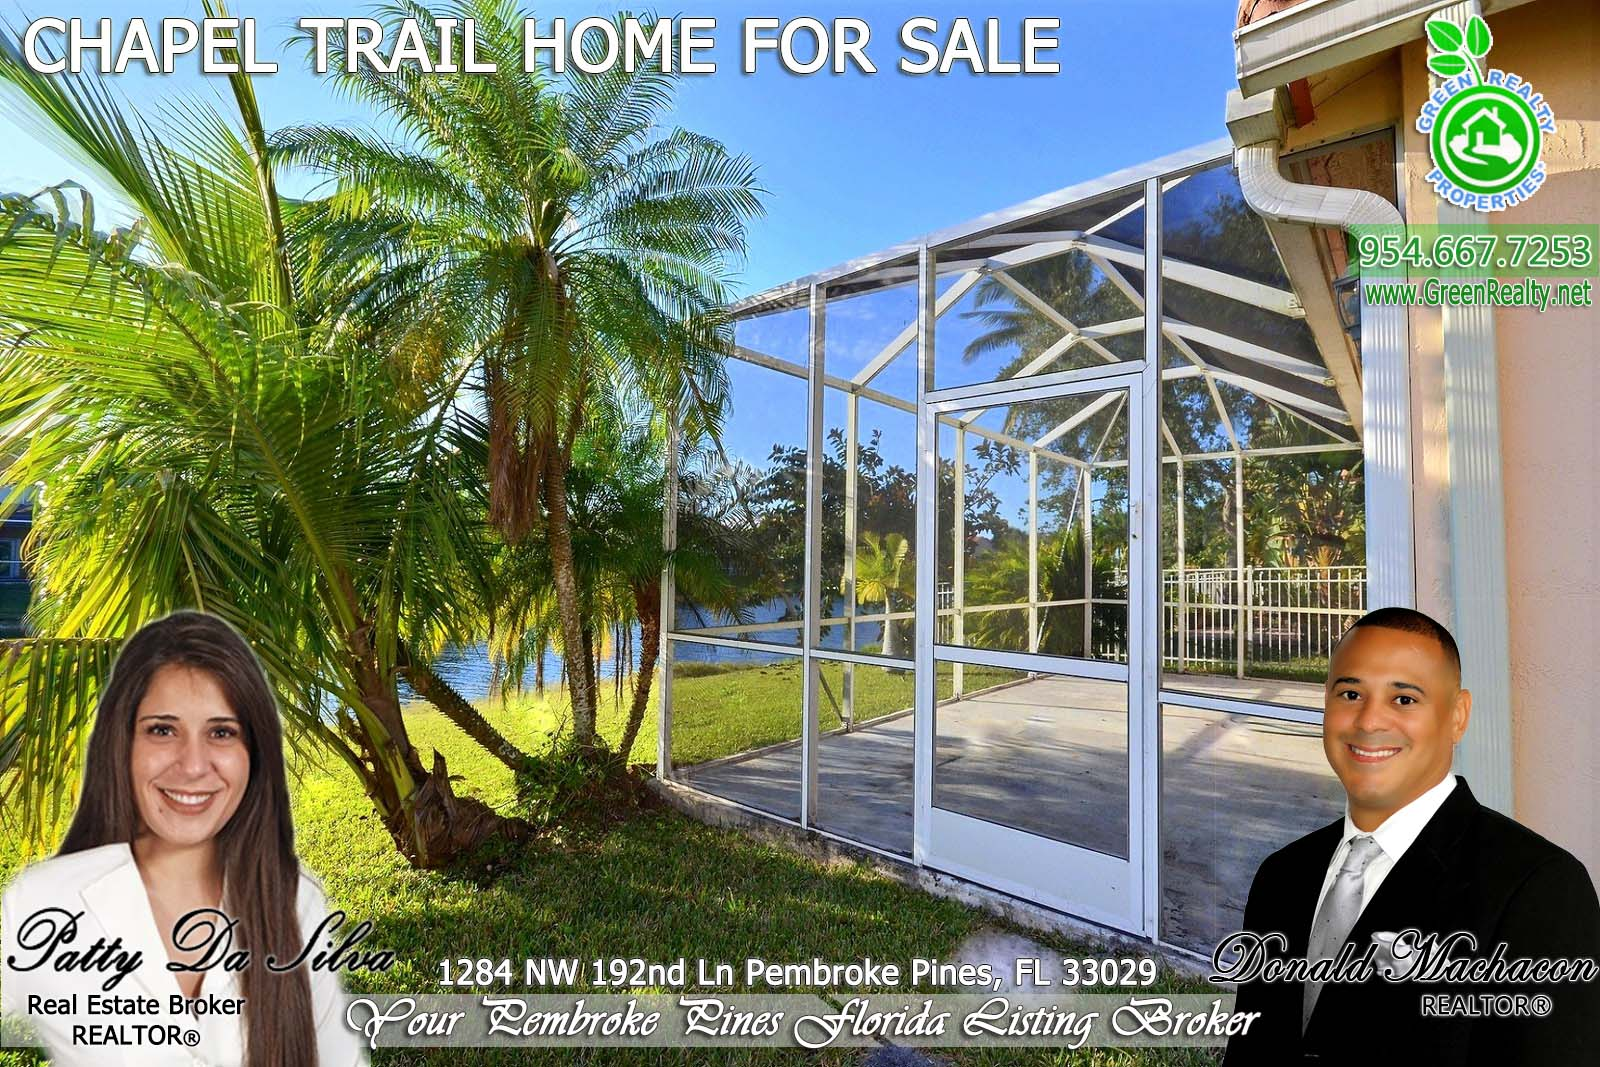 25 Homes For Sale in Pembroke Pines (5)